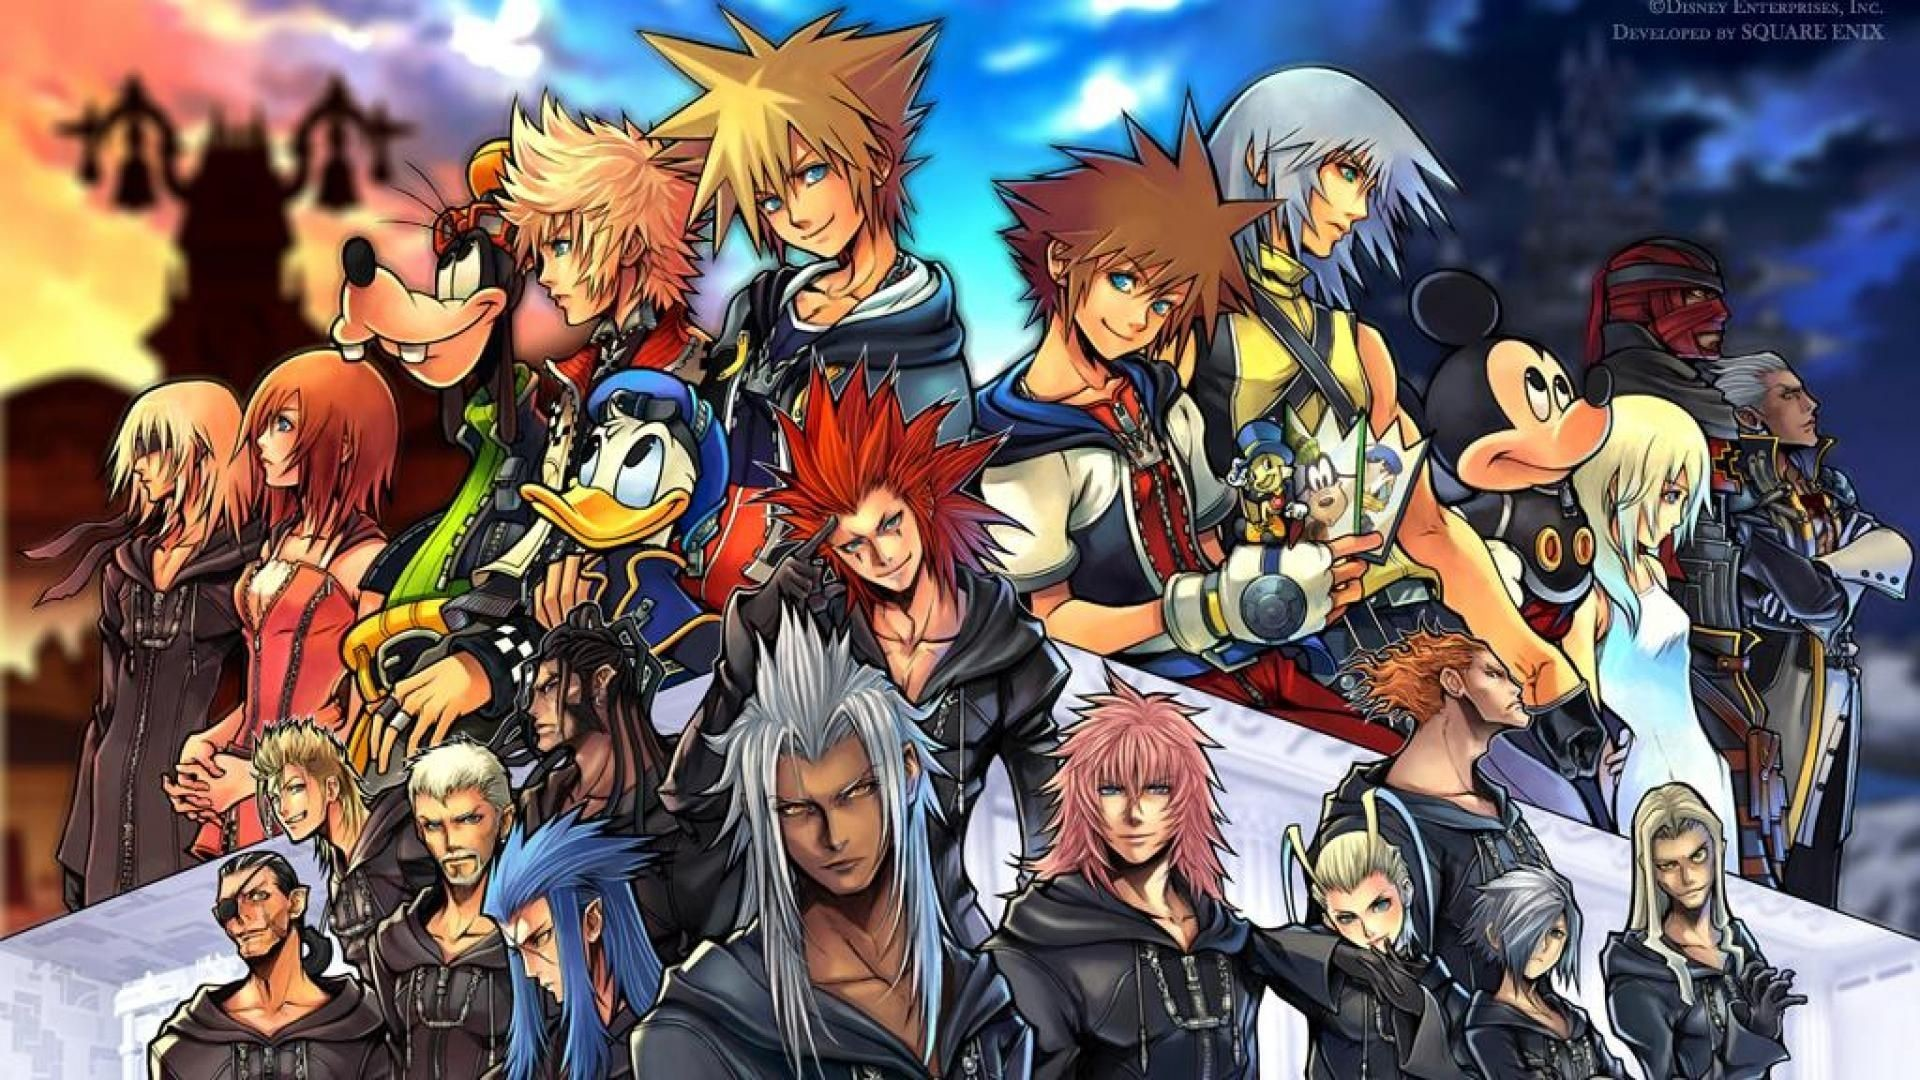 Res: 1920x1080,   Fine HDQ Photos of Roxas Kingdom Hearts, Full HD 1080p  Desktop Photos